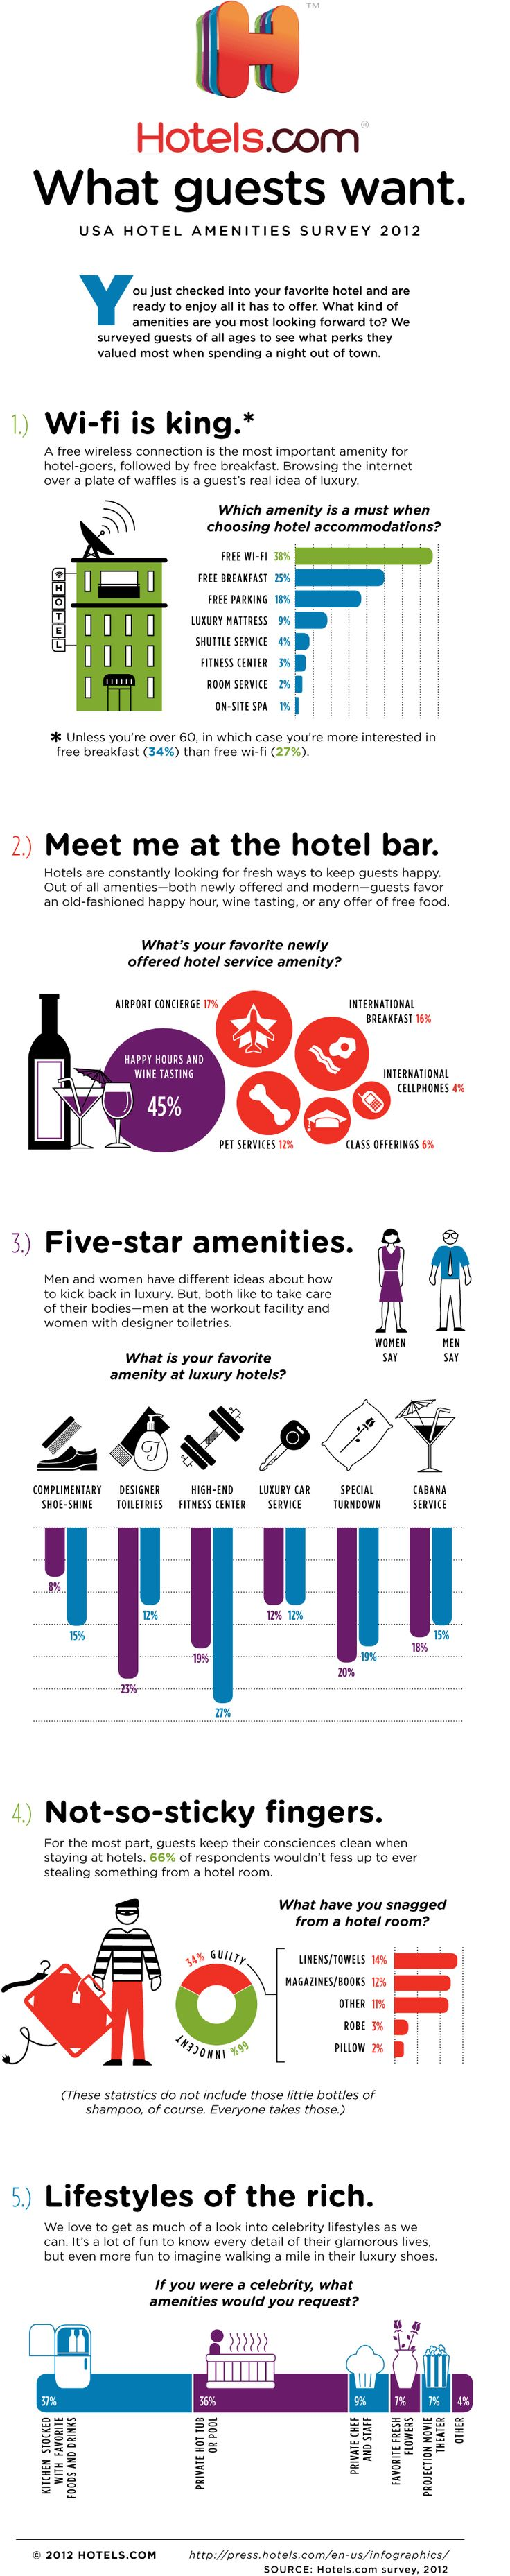 Wi-Fi Tops List Of Most-Wanted Hotel Amenities In New Survey (INFOGRAPHIC)